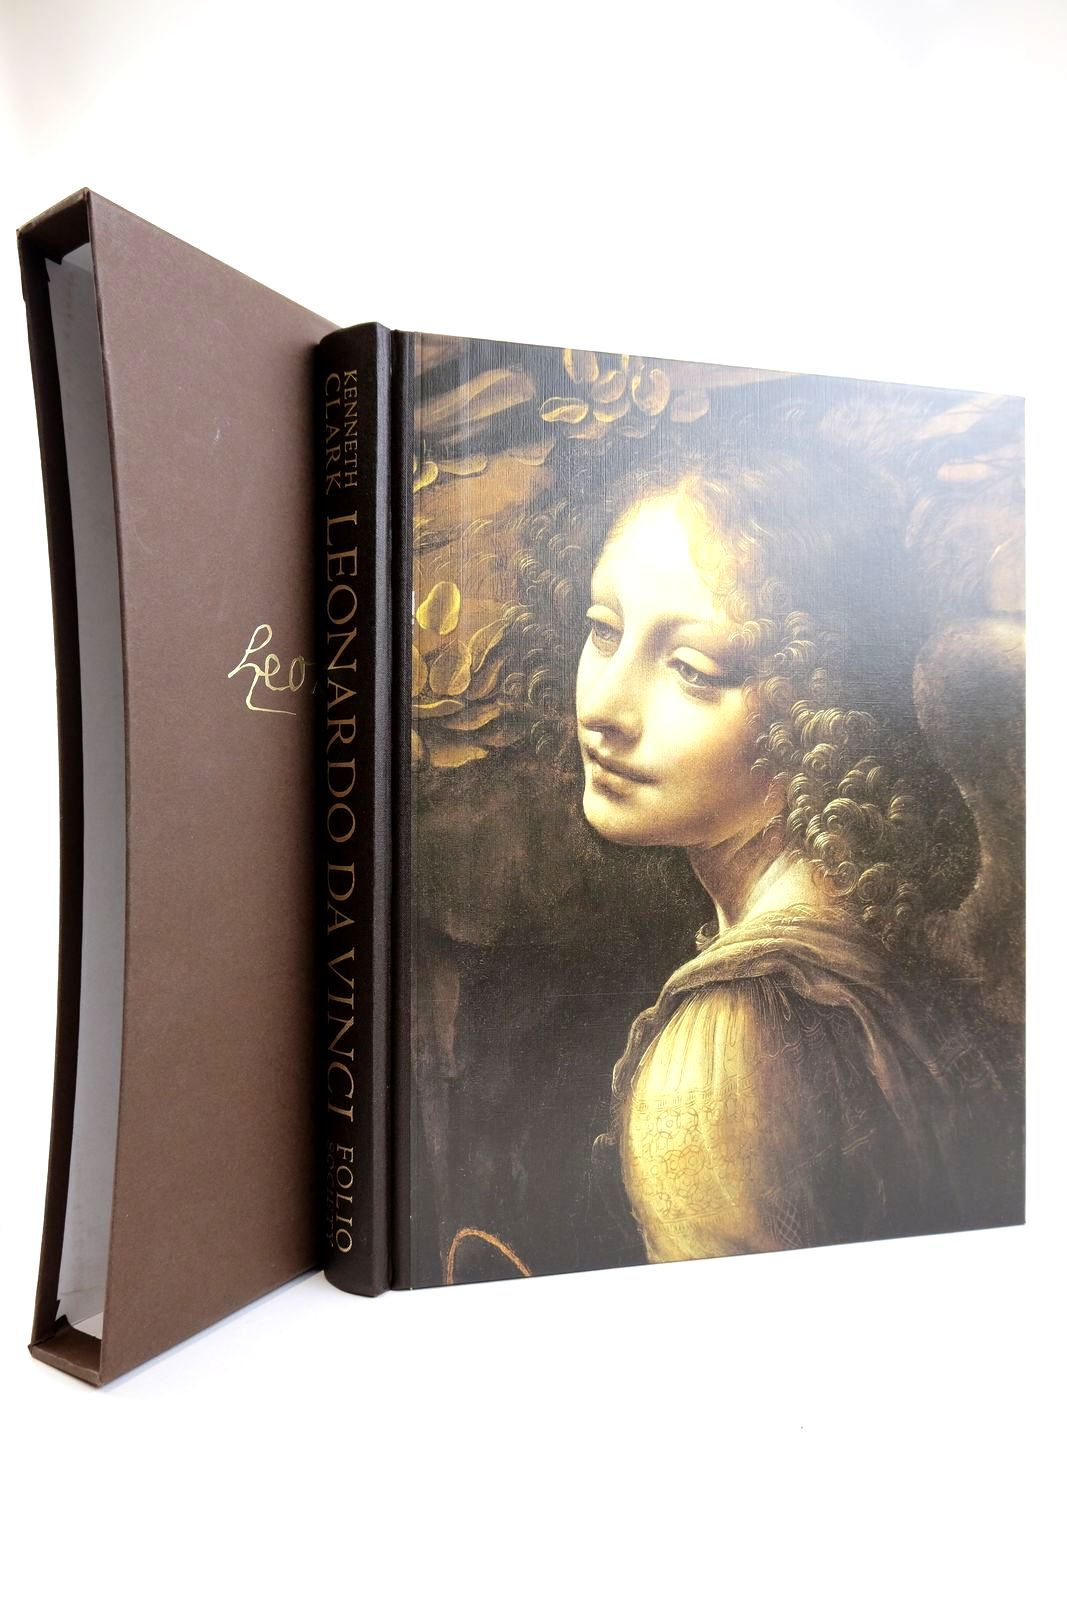 Photo of LEONARDO DA VINCI written by Clark, Kenneth illustrated by Da Vinci, Leonardo published by Folio Society (STOCK CODE: 2132382)  for sale by Stella & Rose's Books